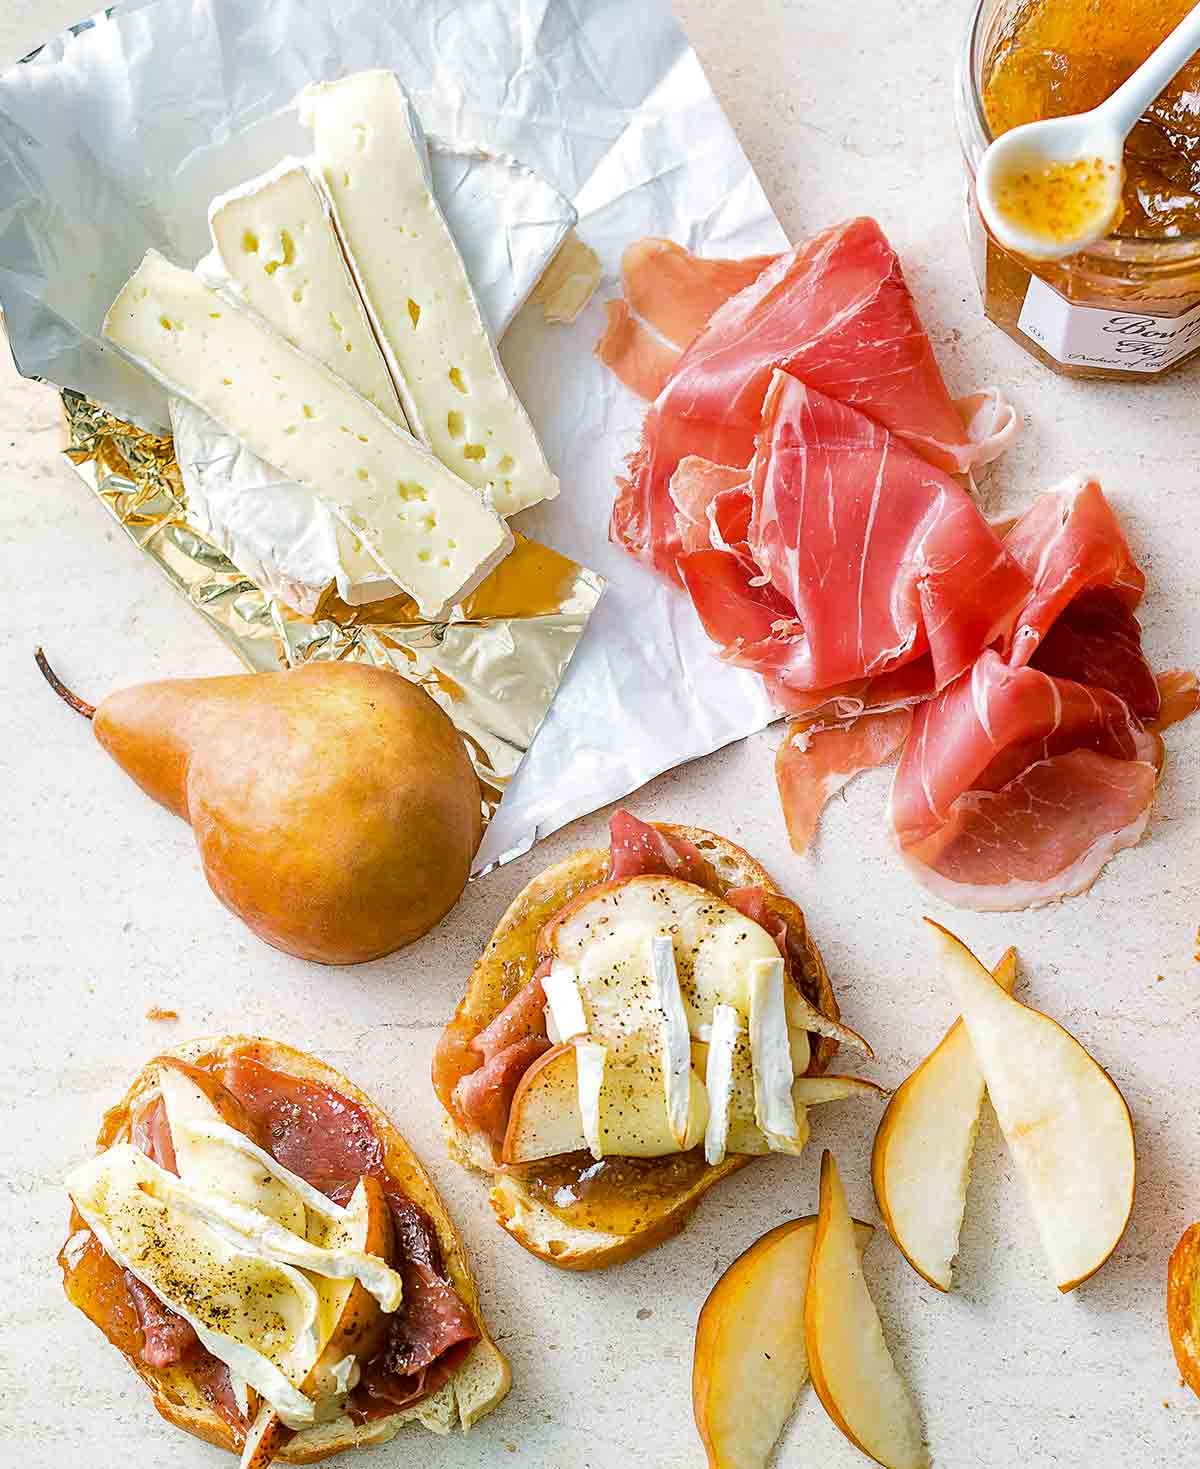 Two pieces of prosciutto, pear, and Brie toasts with slices of Brie, pear, prosciutto, and a jar of fig jam beside the toasts.